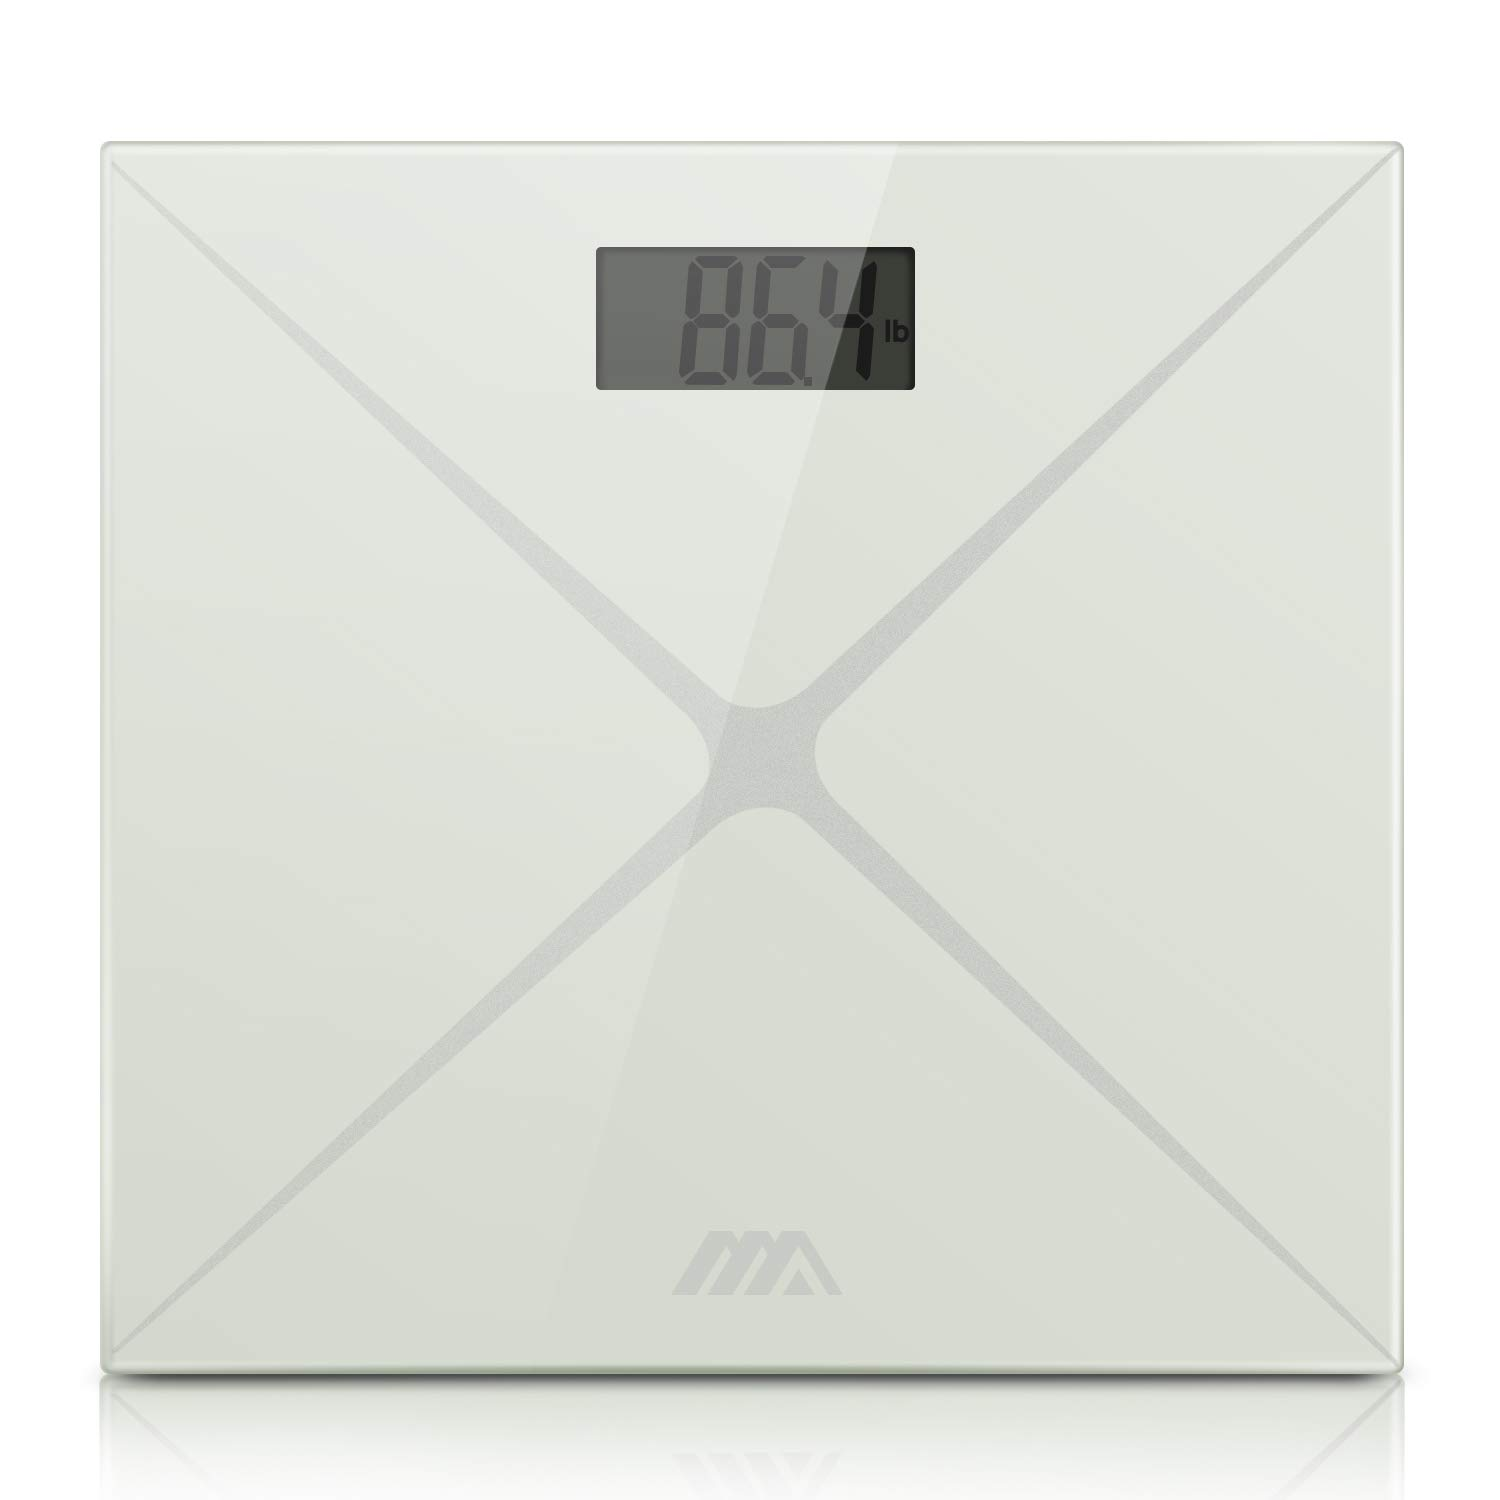 Digital Body Weight Scale, Bathroom Scale with Advanced Step-on Technology and LCD Backlight Display Scale,Tempered Glass Surface (White Silver) by AdorioPower (Image #2)